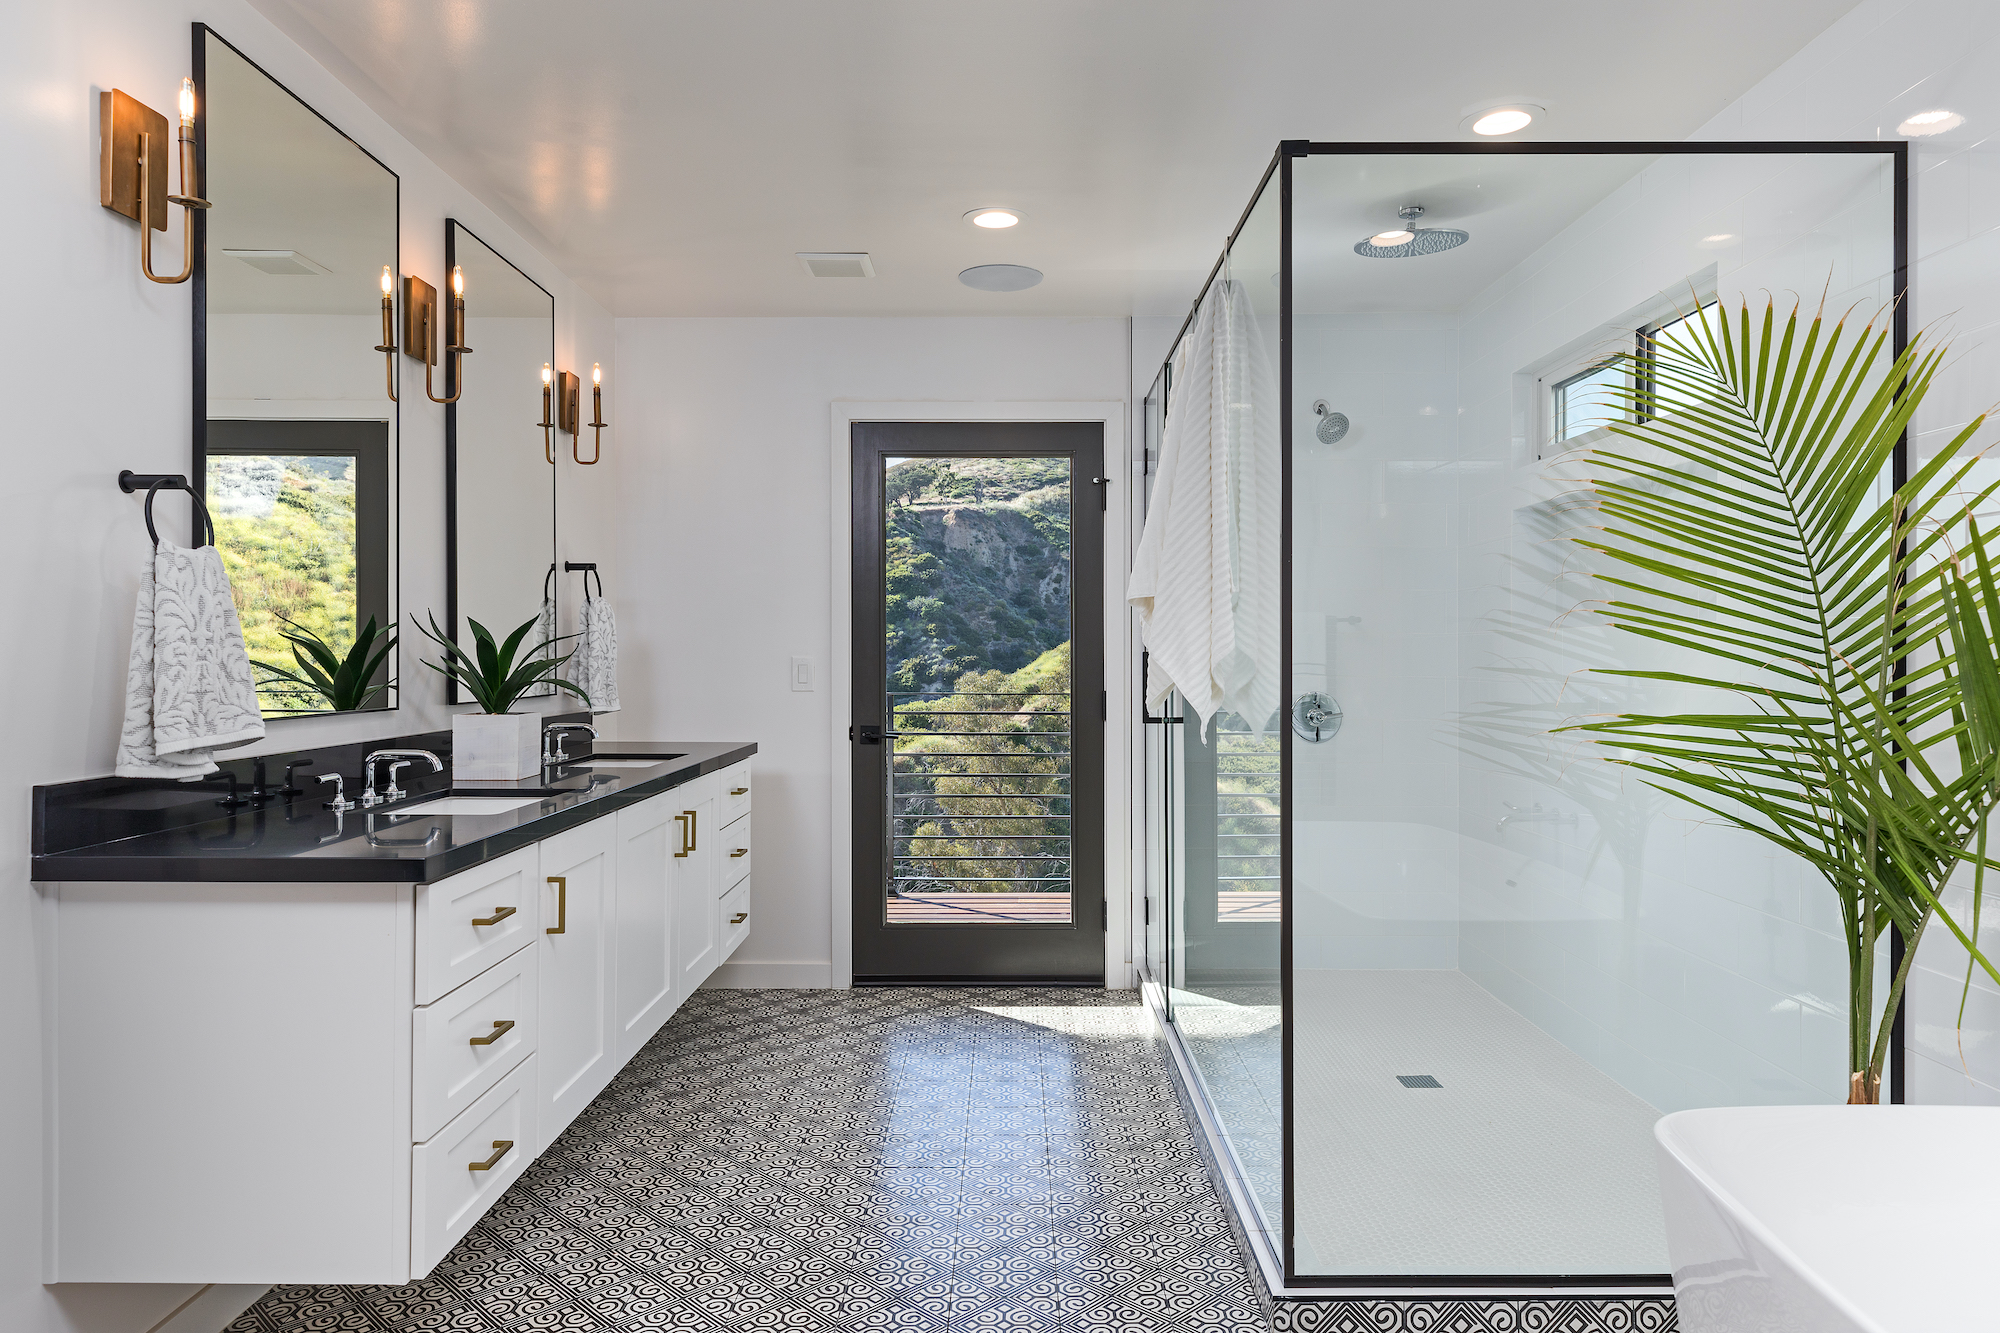 Homebuying Trends 2021, Curbless Shower in modern bathroom